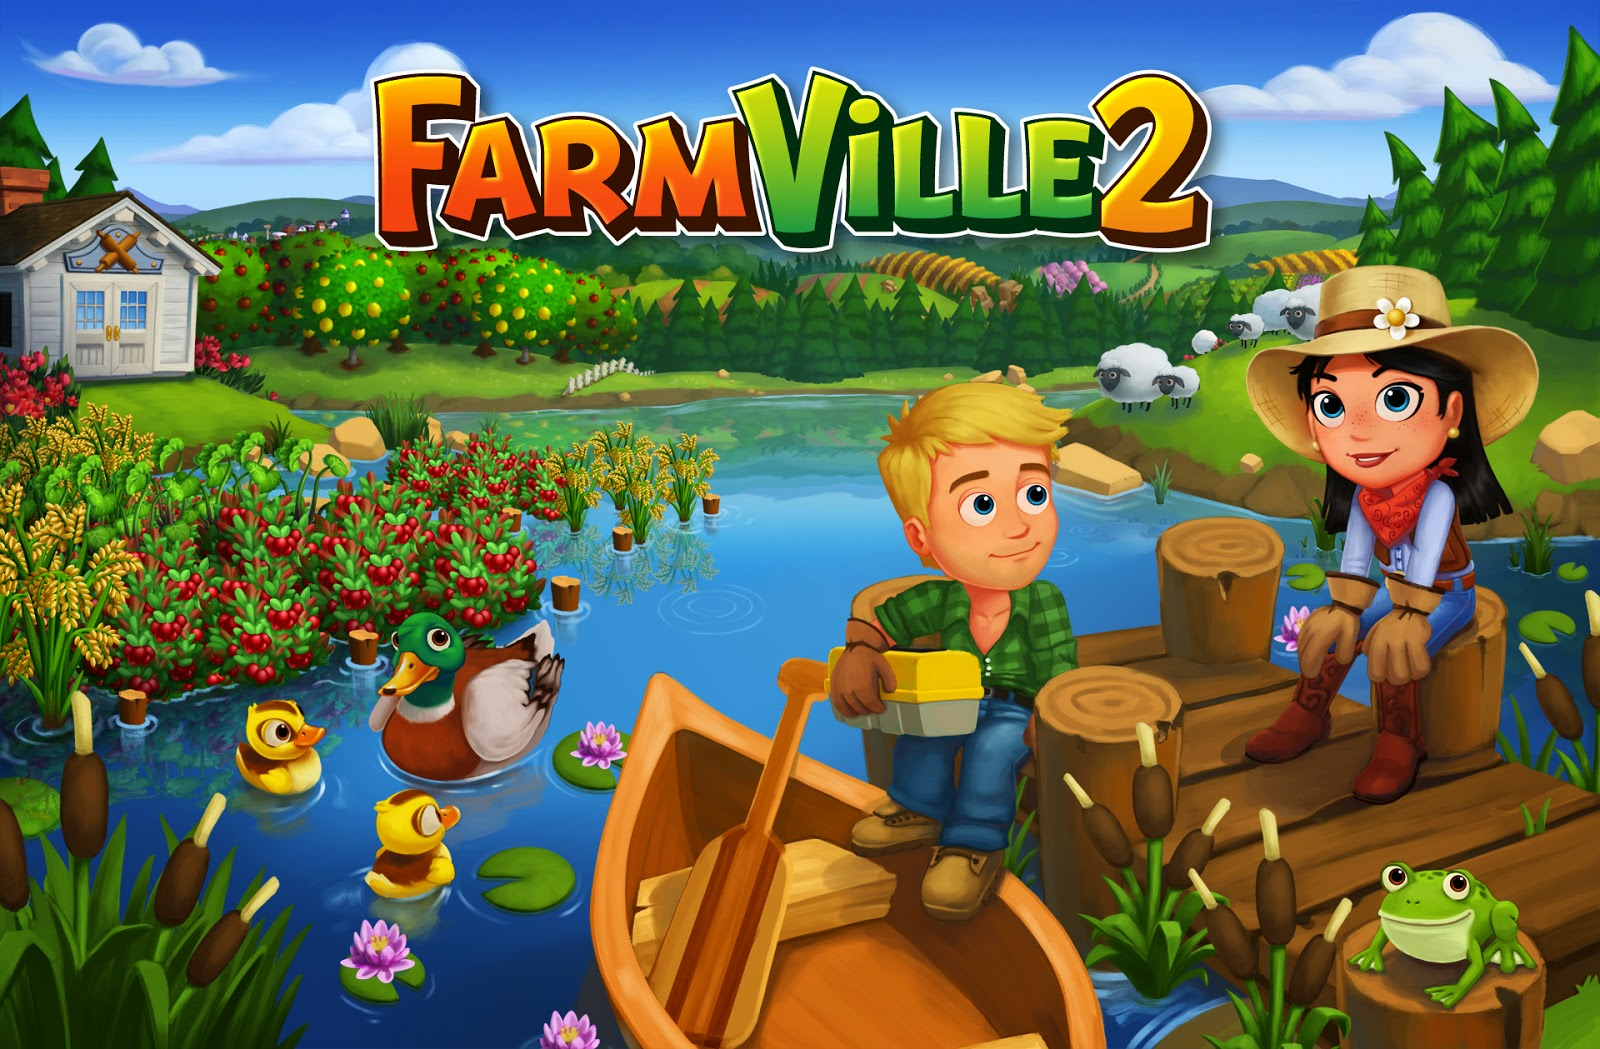 Farmville 2 hack cheat tool v2 8 password